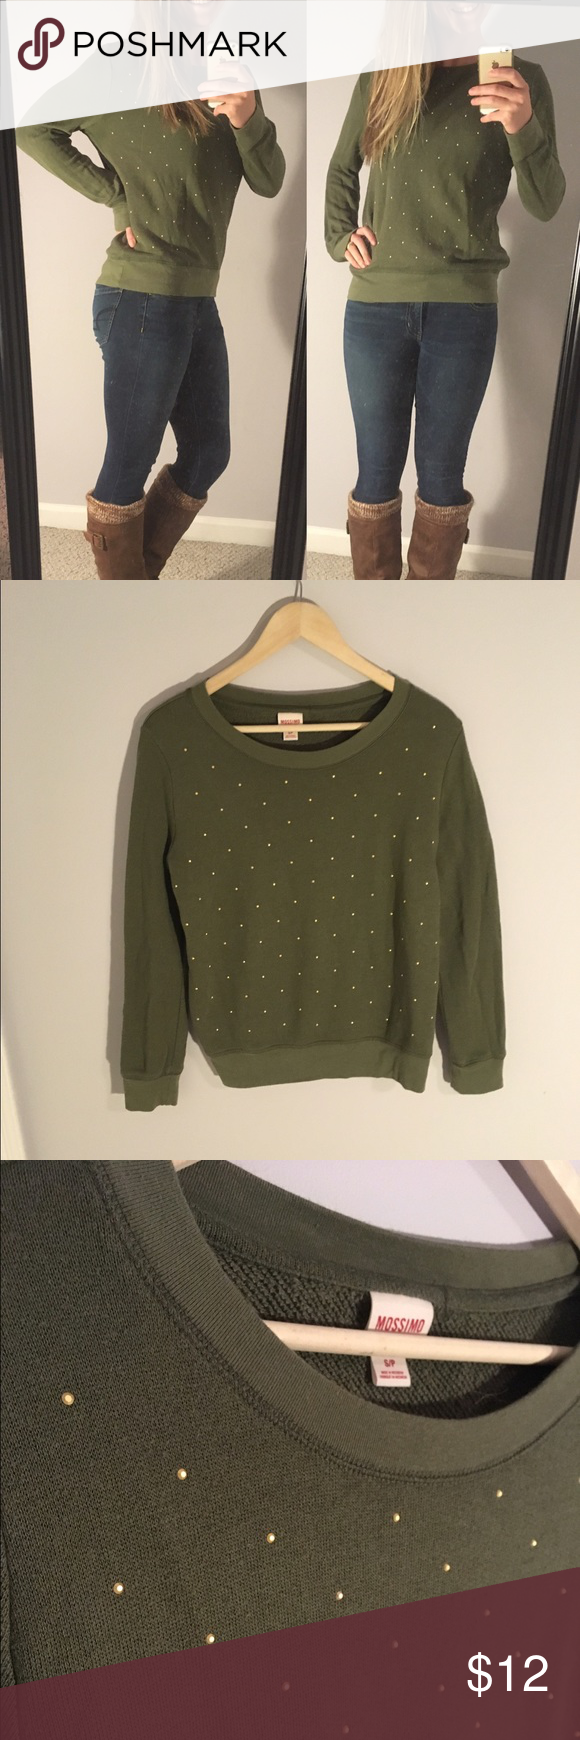 Mossimo Gold Studded Sweater Size S This cozy Mossimo sweater is perfect for fall/winter! Cute gold stud details cover the front of this sweater. The back is plain. Only worn once! Women's size S. Feel free to ask any questions 😊 Mossimo Supply Co Sweaters Crew & Scoop Necks